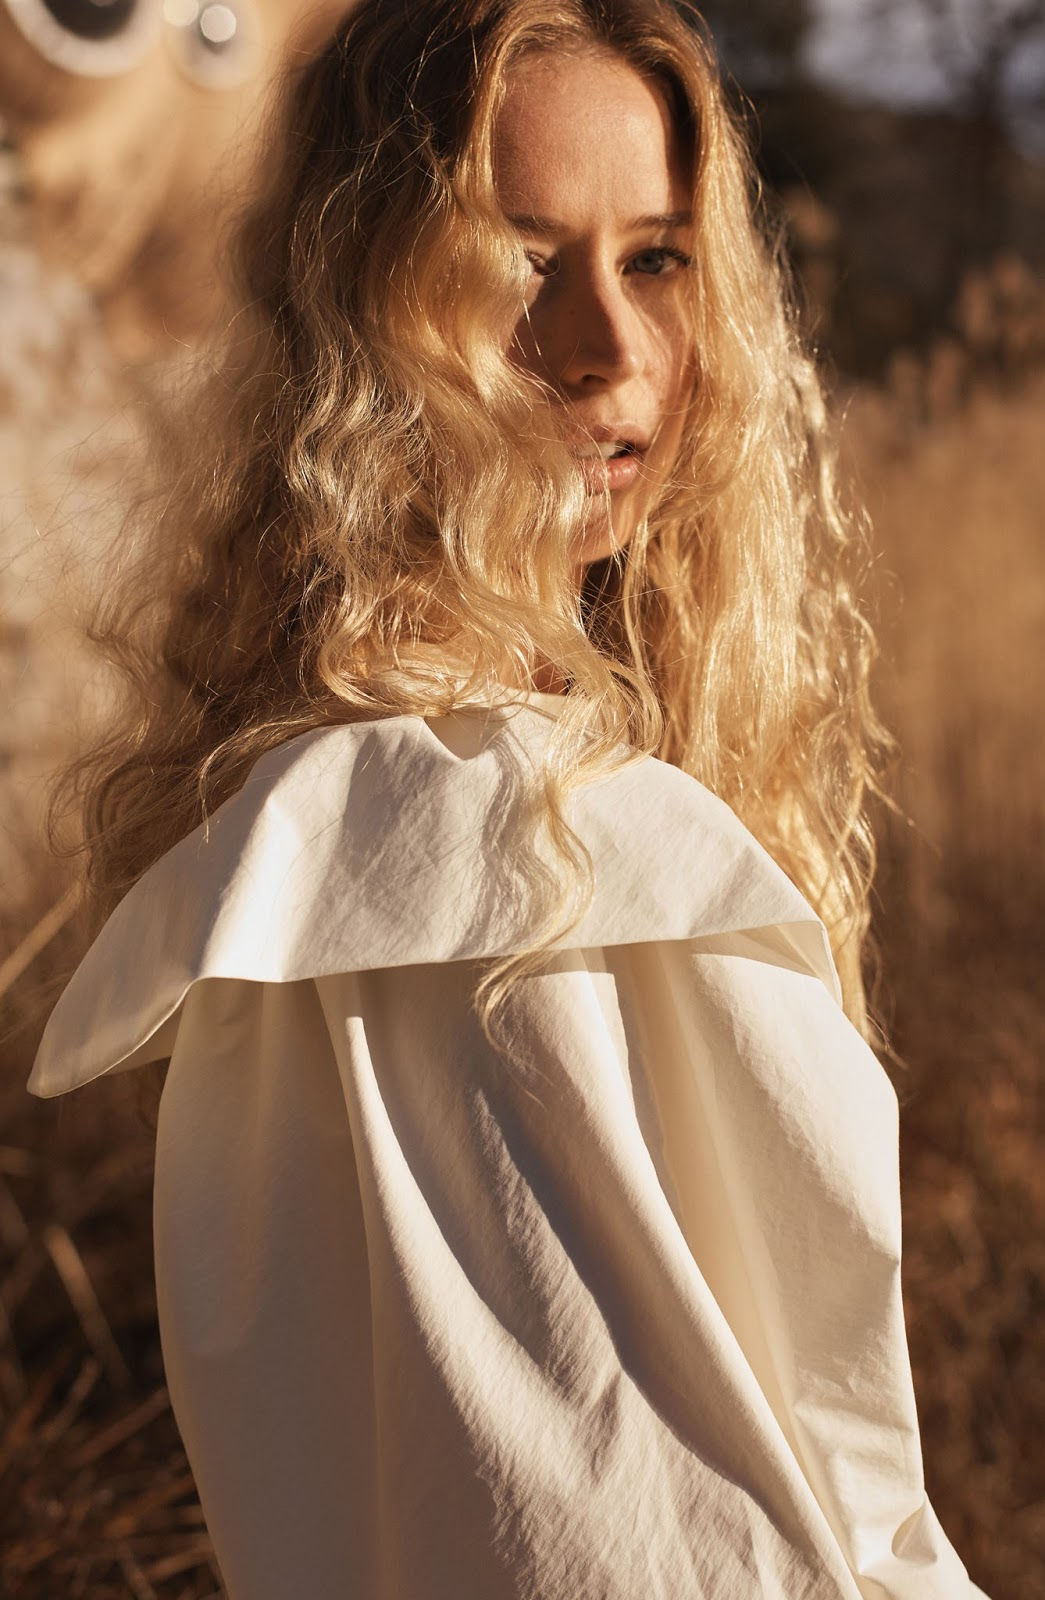 Raquel Zimmermann for Mango (photography: Josh Olins, styling: Aleksandra Woroniecka, make-up: Sally Branka, hair: Shon)